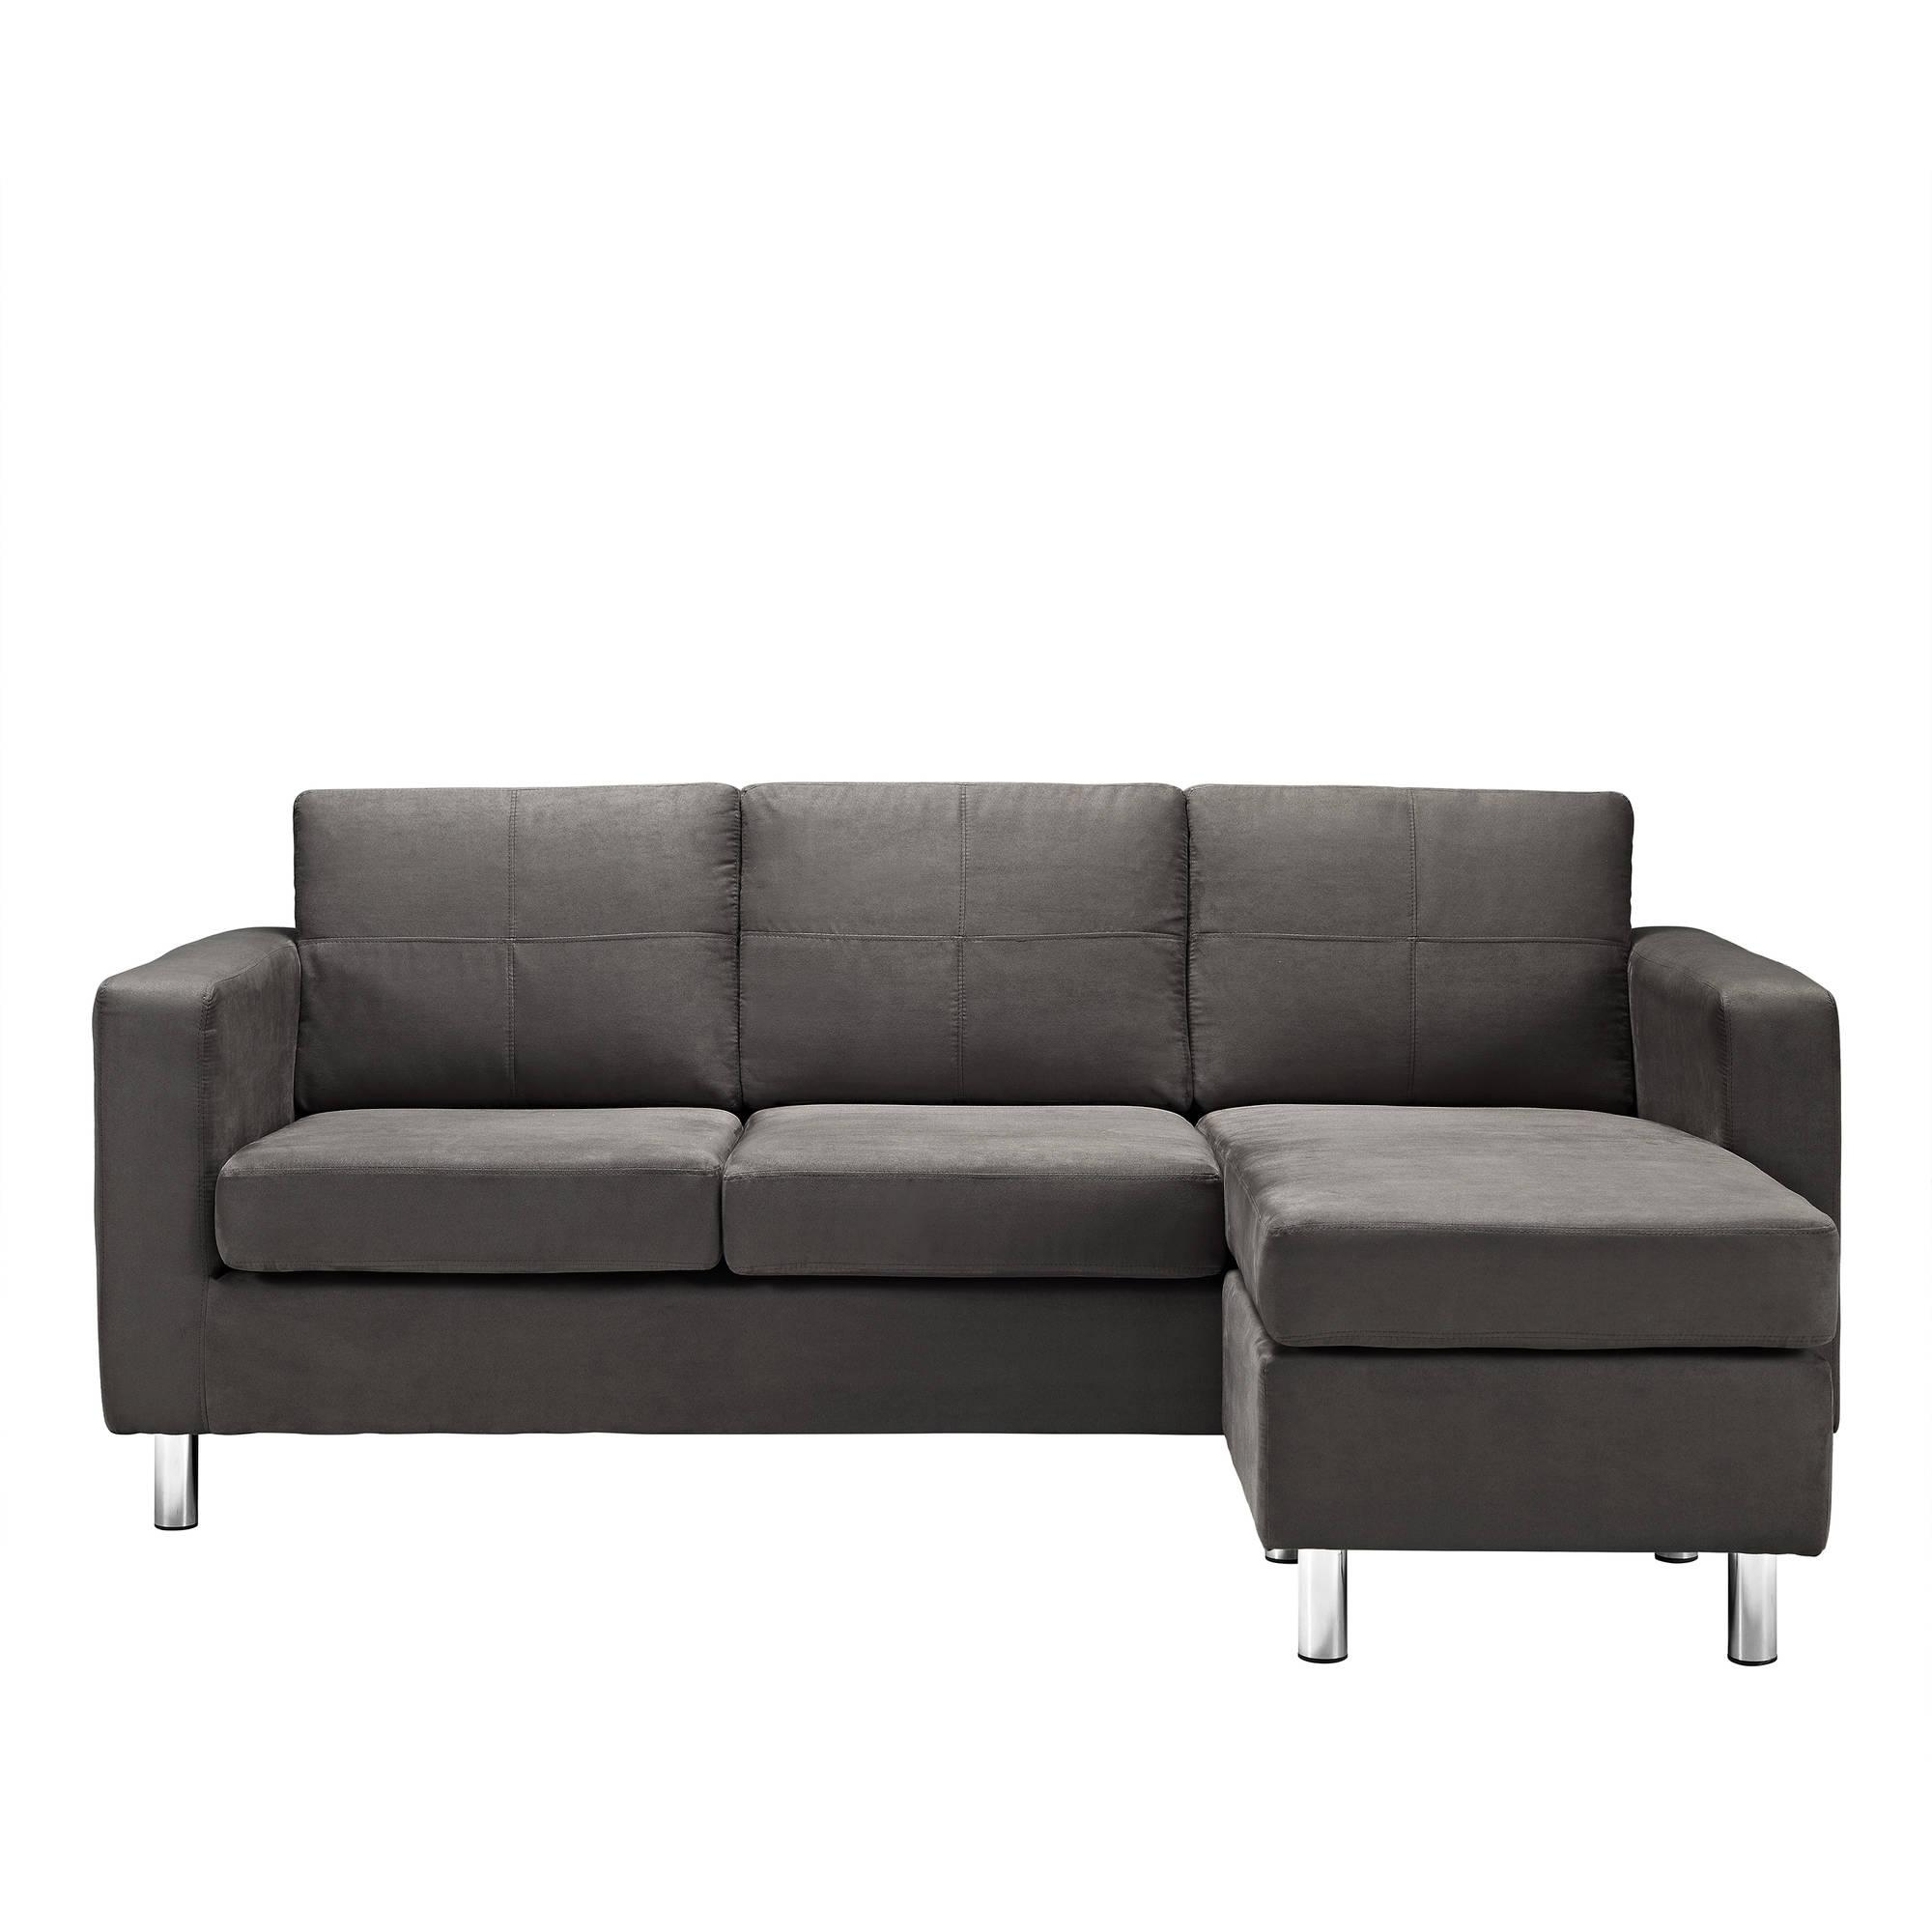 Dorel Living Small Spaces Configurable Sectional Sofa, Multiple Within Sectional Small Space (Image 8 of 20)